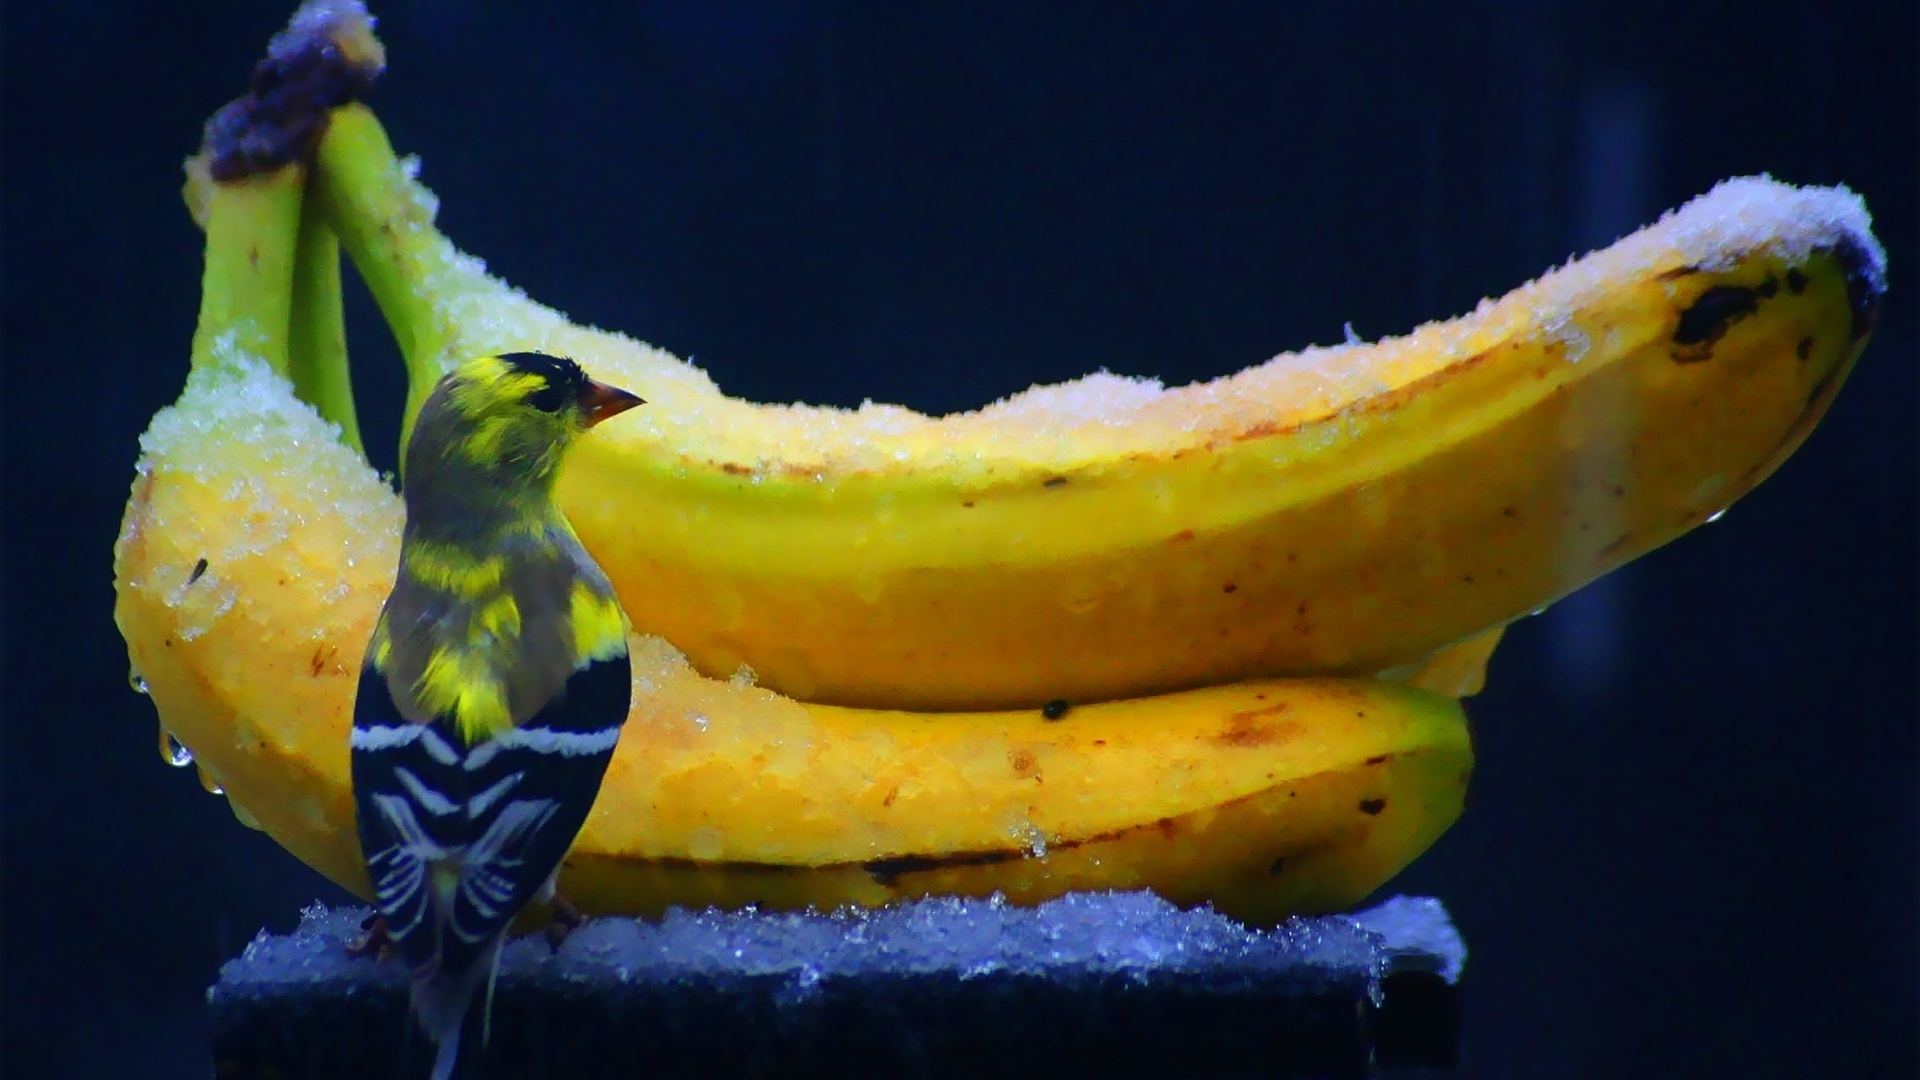 Bird Frozen Bananas And HD Wallpaper